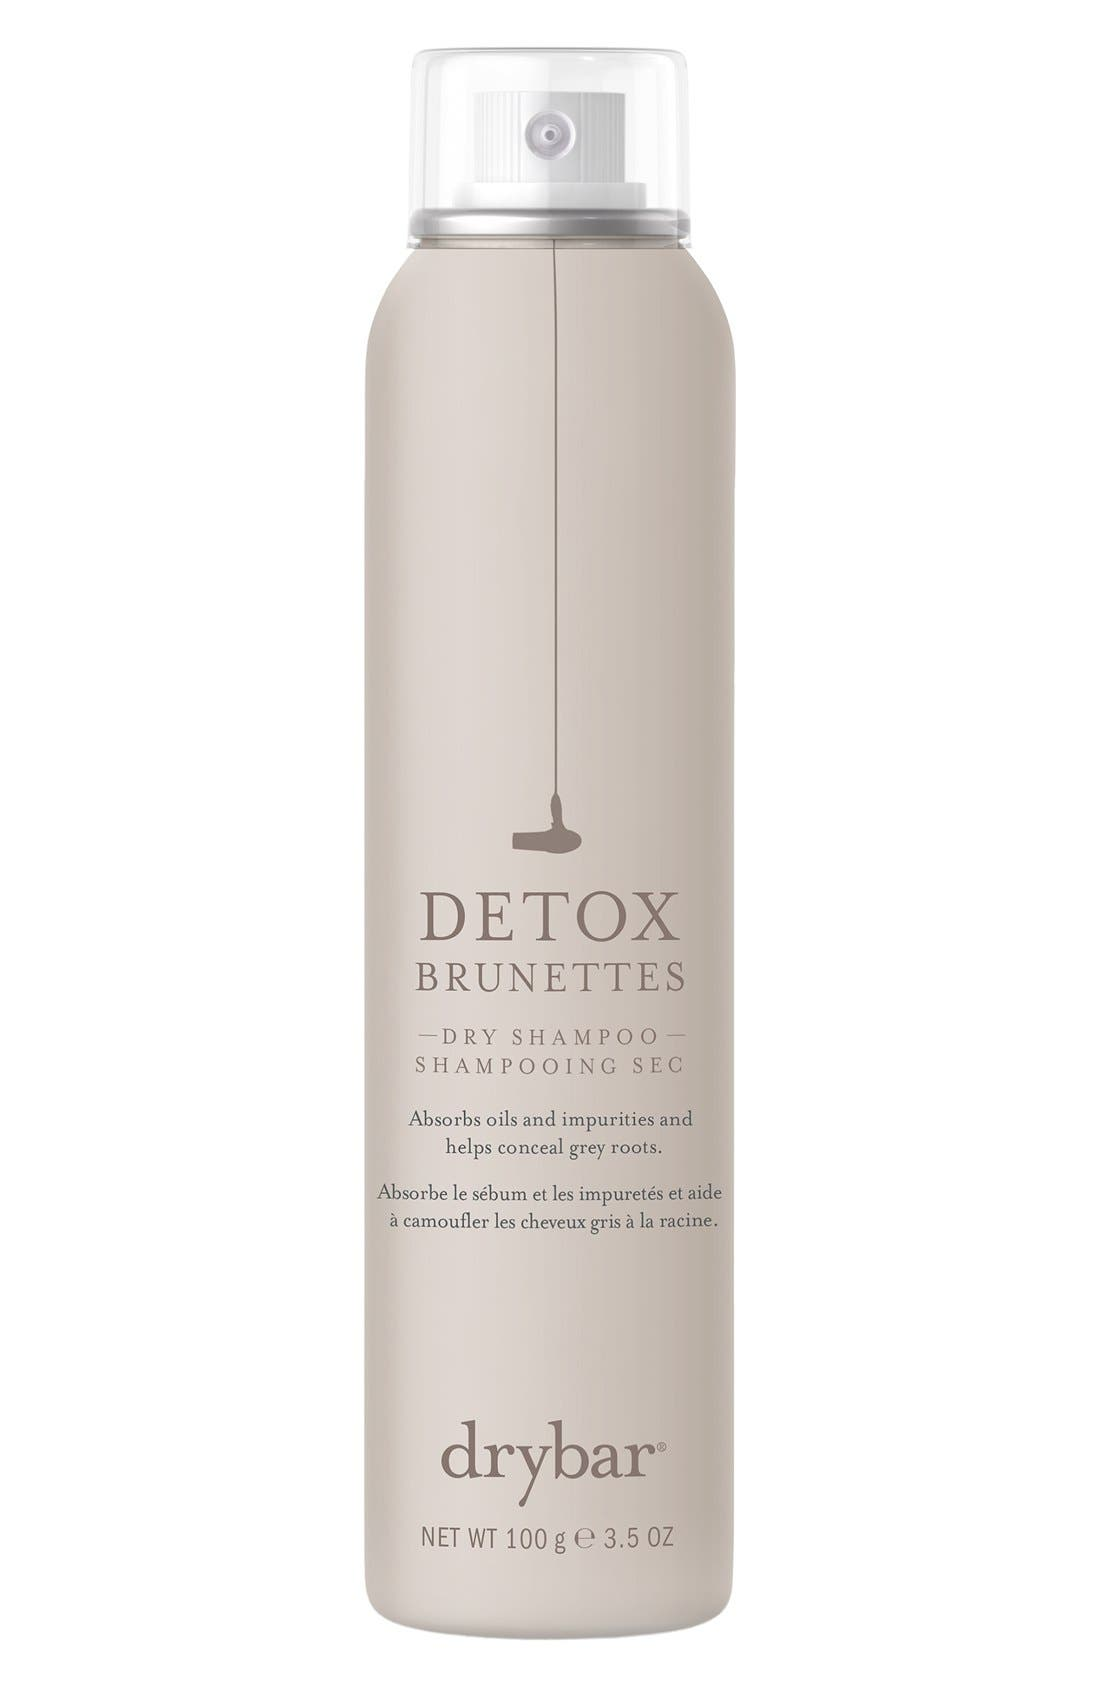 DRYBAR Detox Dry Shampoo for Brunettes, Main, color, NO COLOR